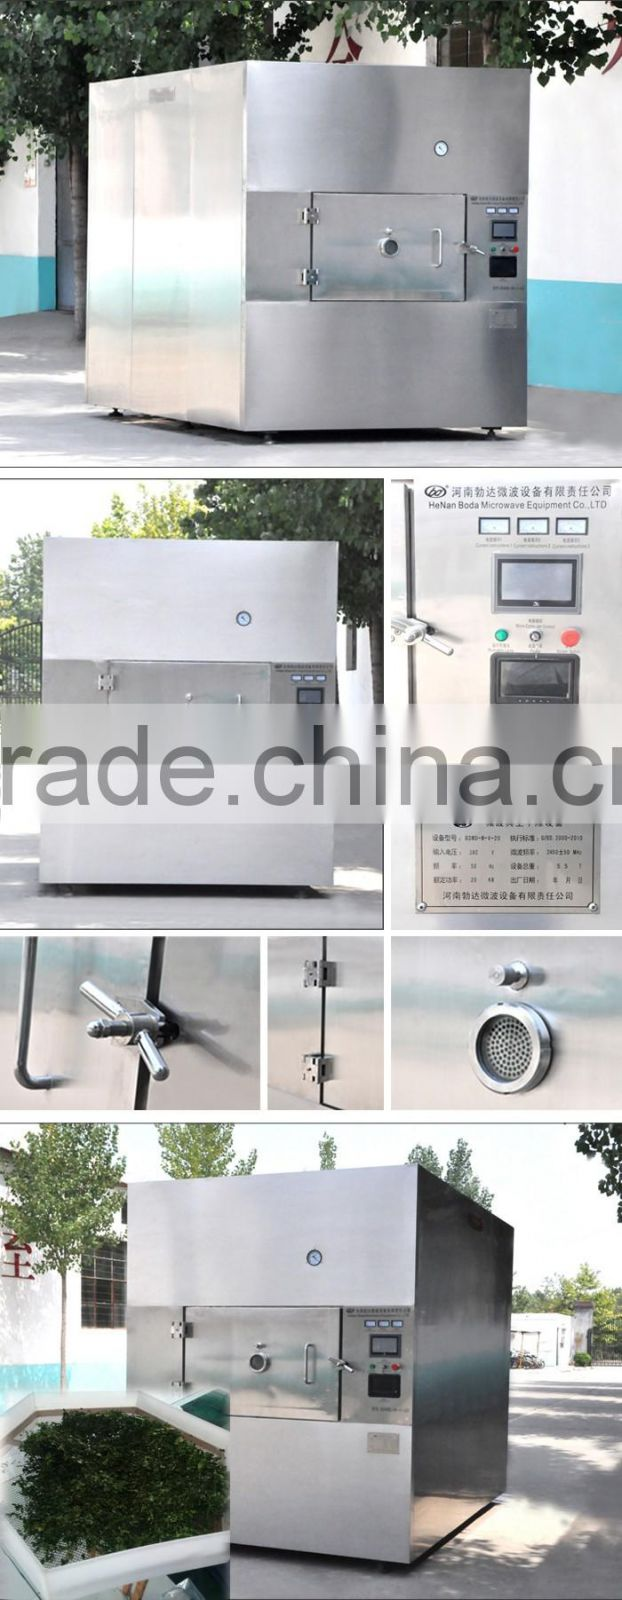 industrial food drying machine dehydrating machine microwave vacuum drying machine wide application high efficiency